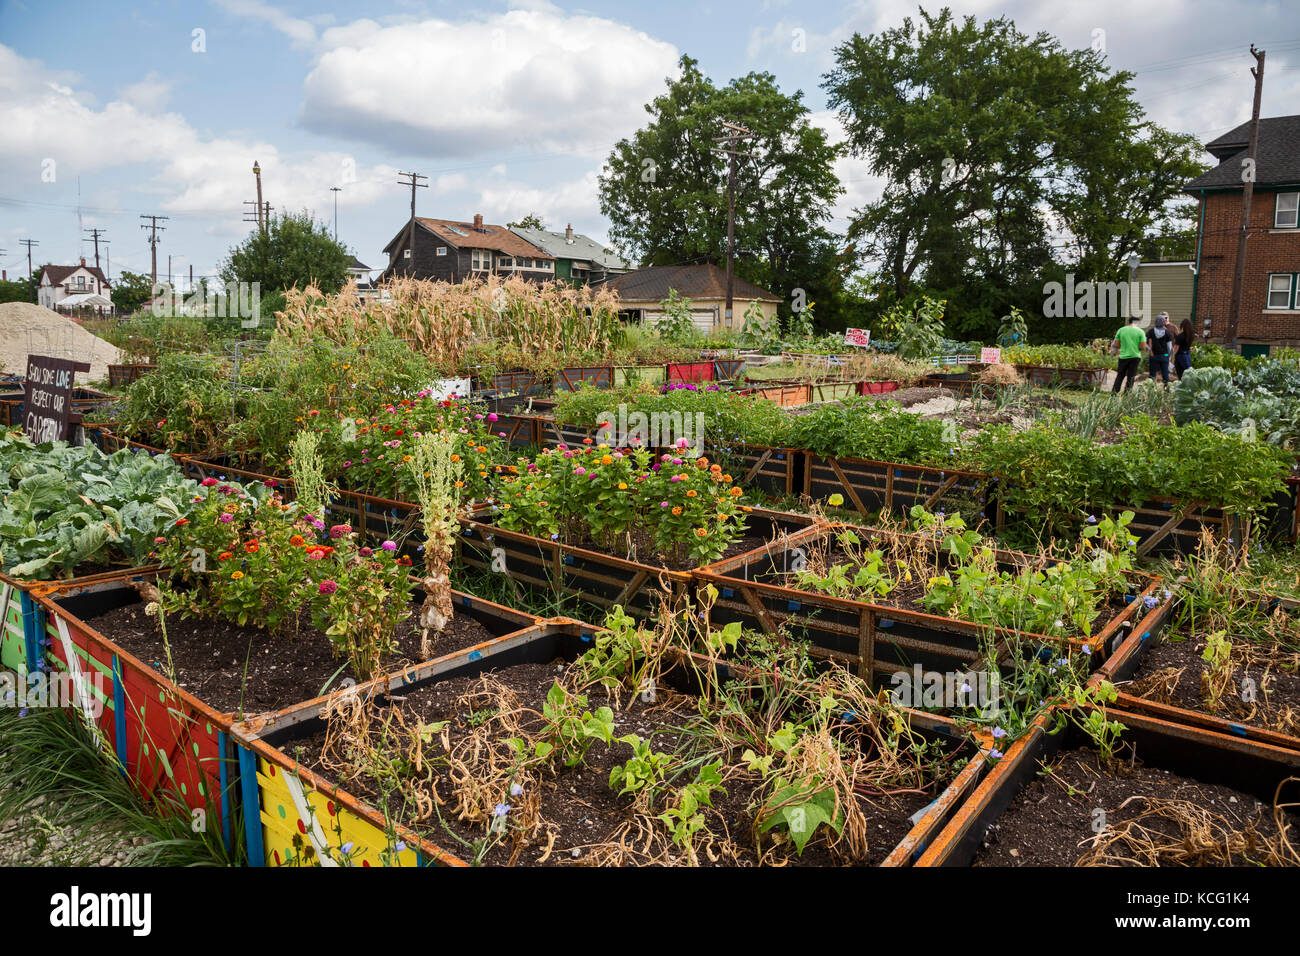 Garden Containers Stock Photos & Garden Containers Stock Images - Alamy